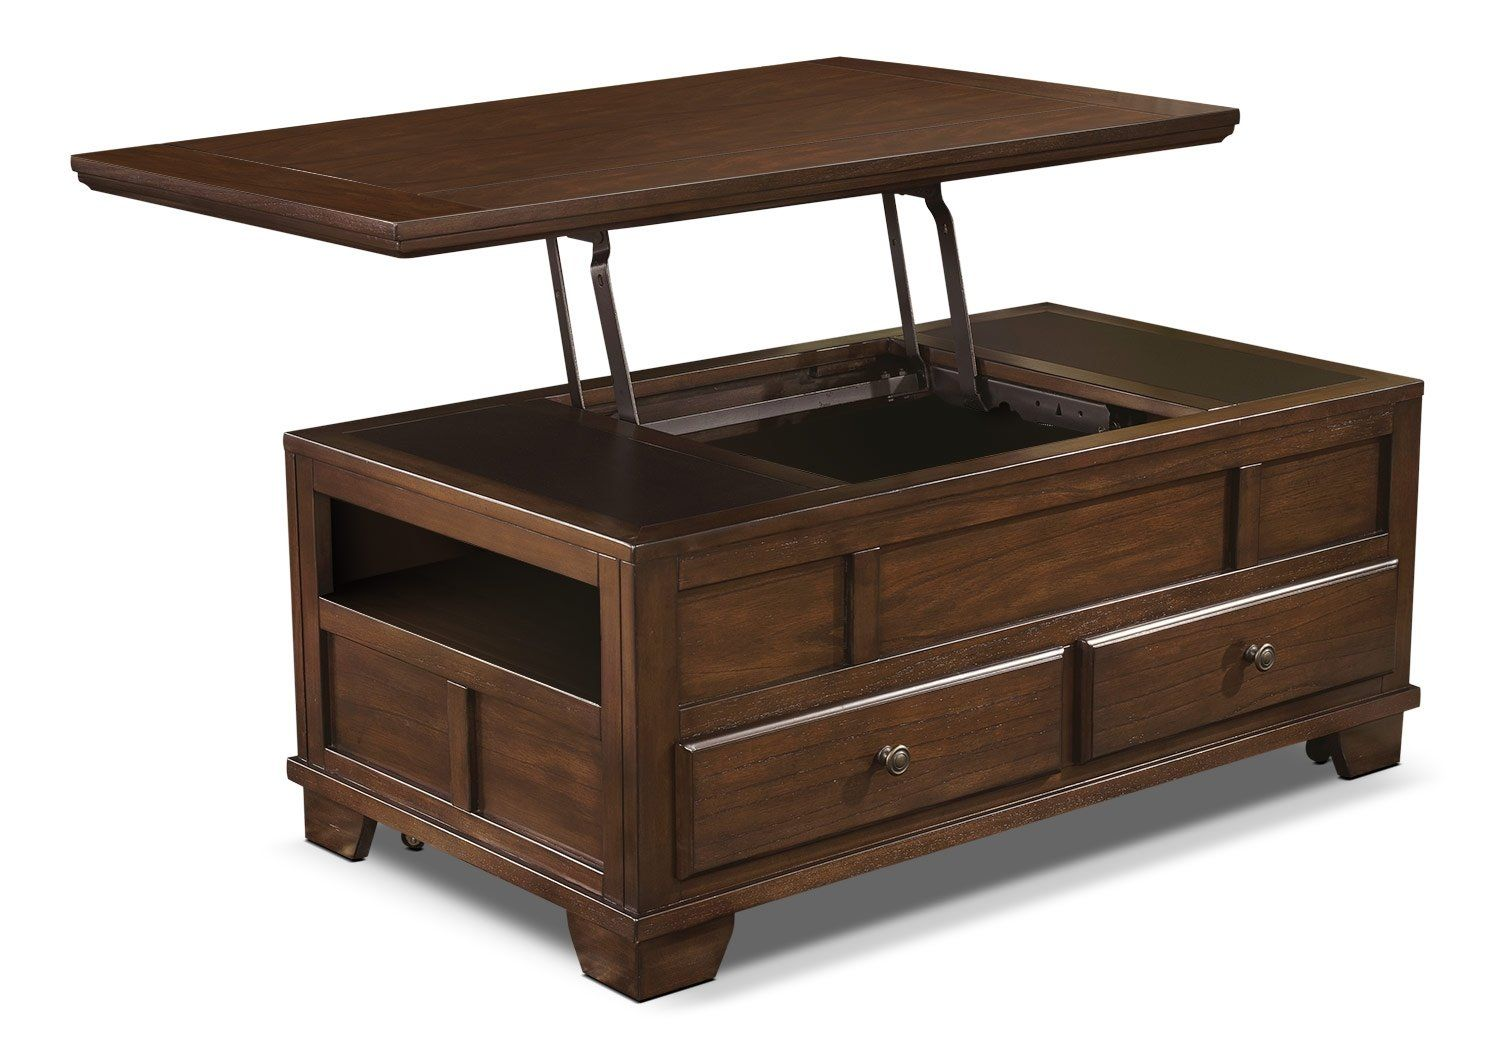 When Decorating You Need A Lift Top Coffee Table The Wide Array Of Choice And Price Range Can Get You C Coffee Table Lift Top Coffee Table Coffee Table Design [ 1054 x 1500 Pixel ]